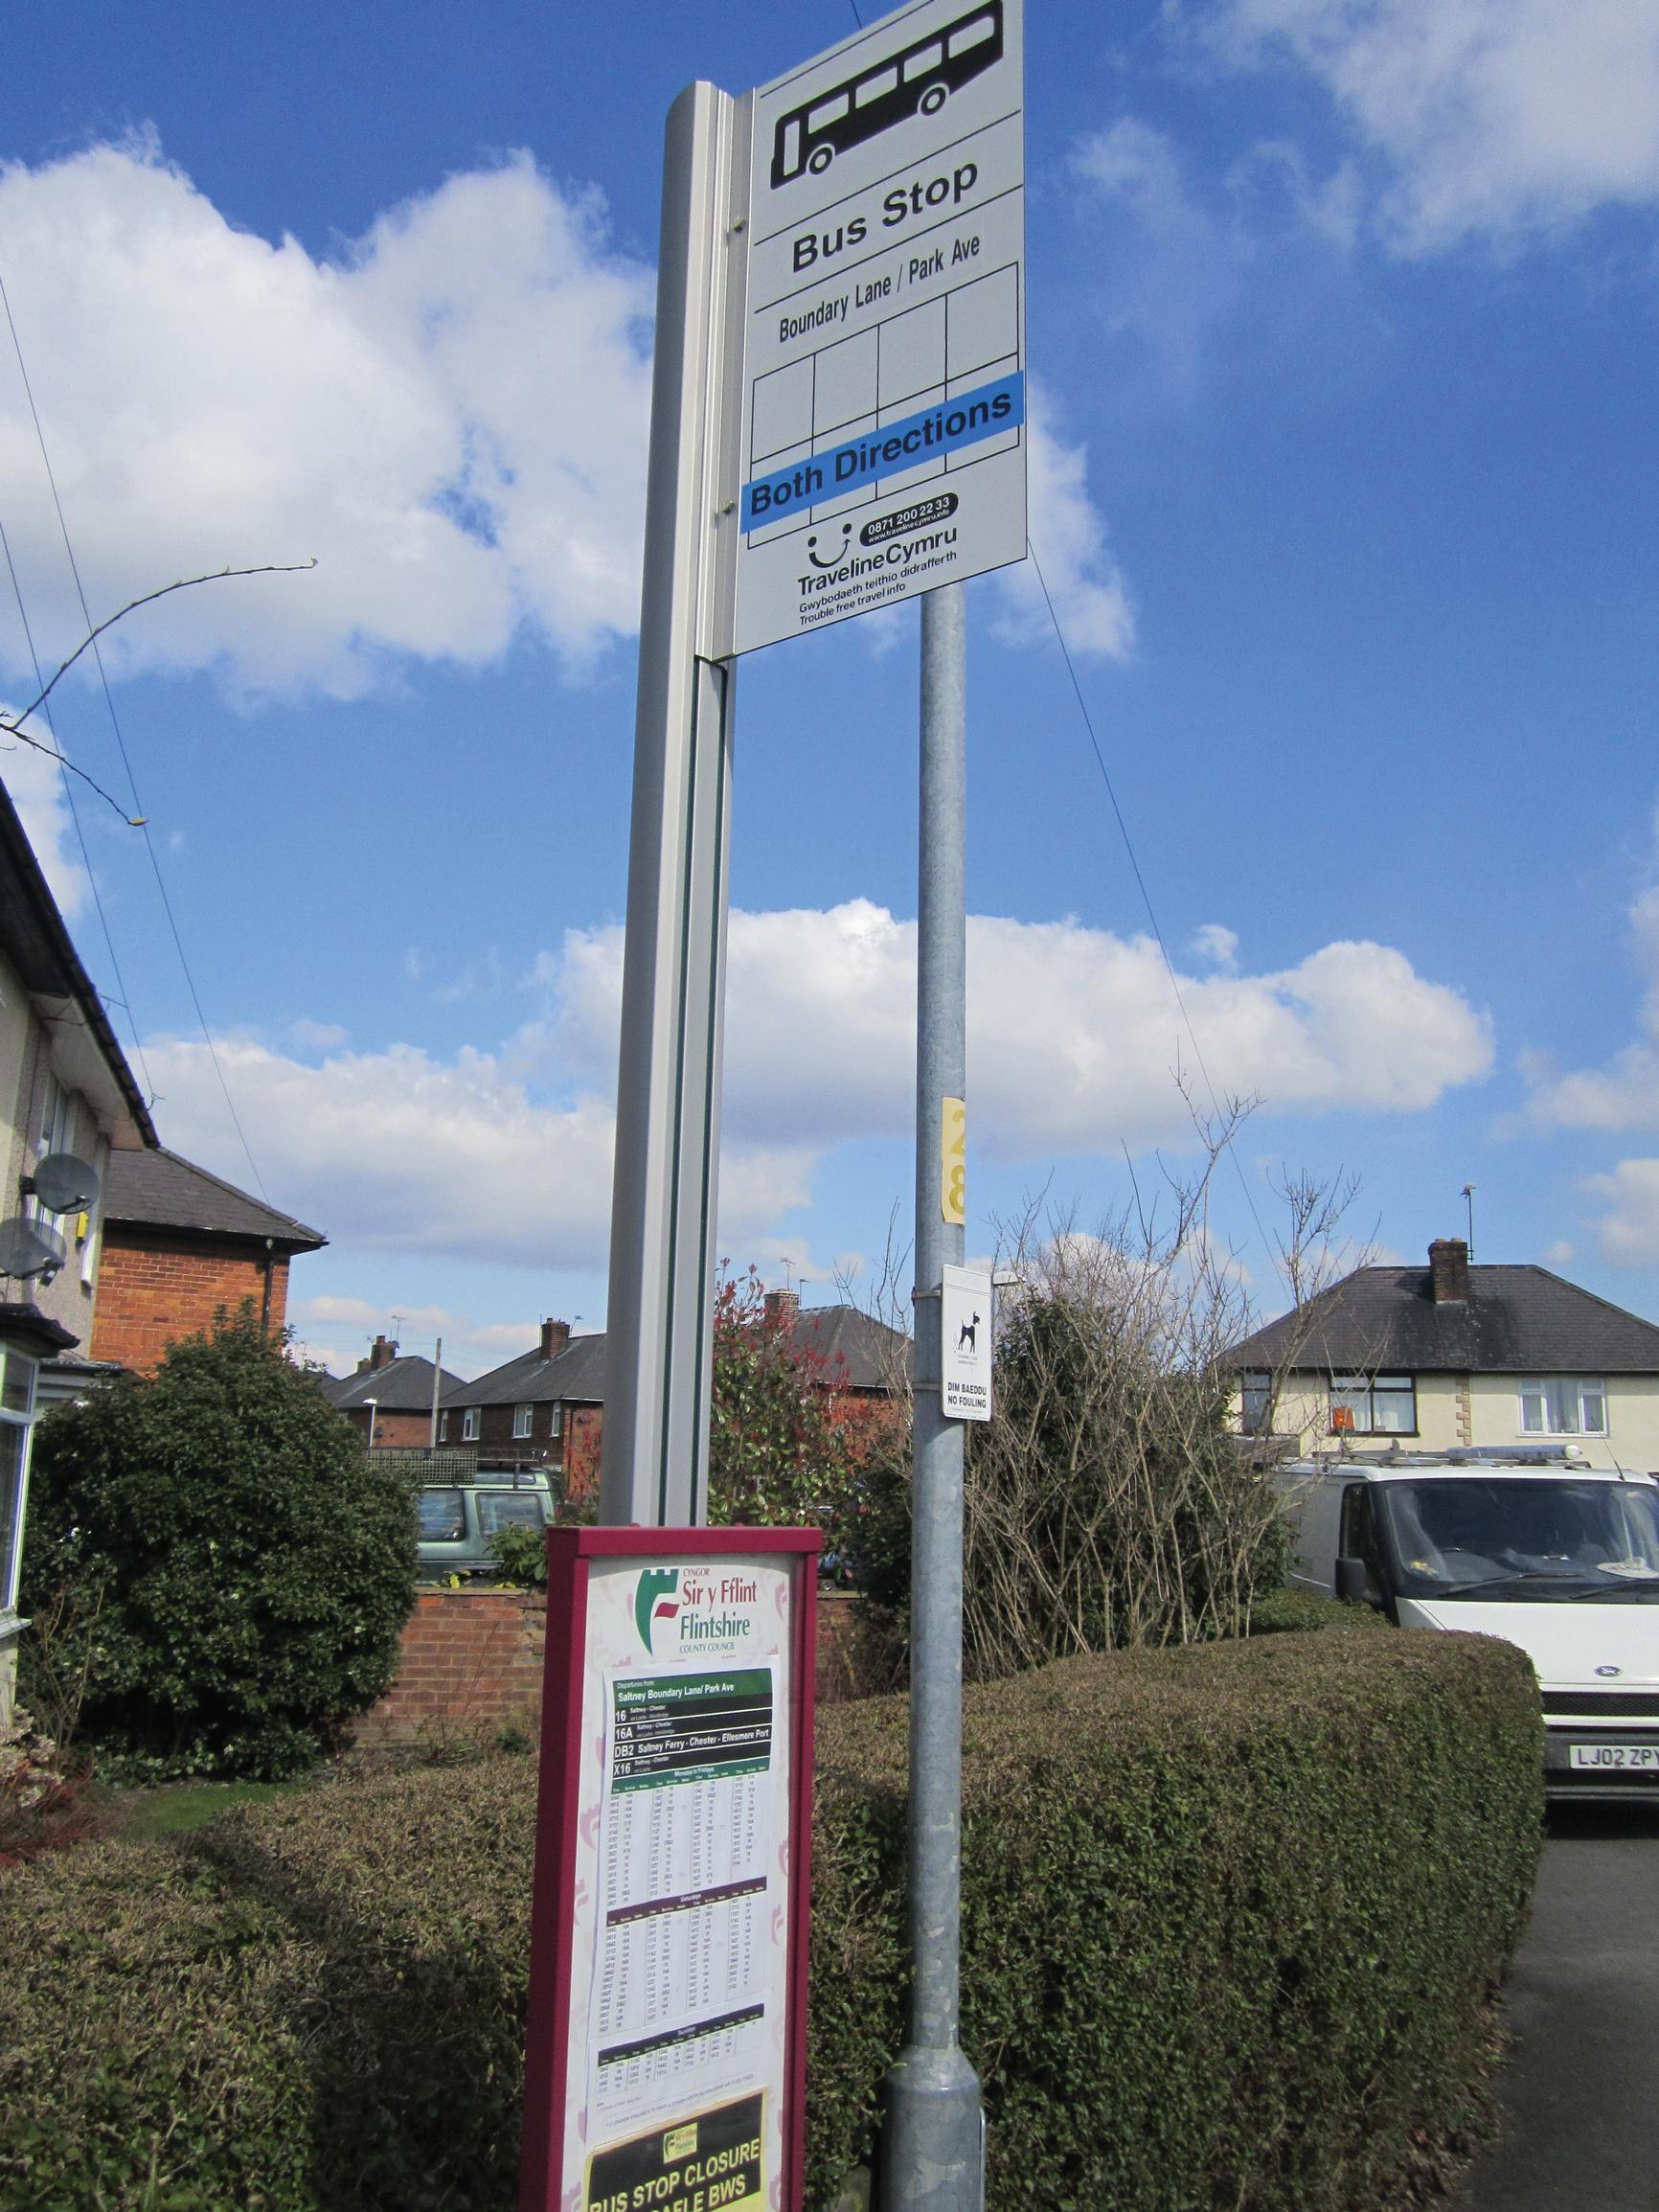 The DfT should follow the Welsh Government's proposal for statutory guidance on bus stop design, says Daniel Washington